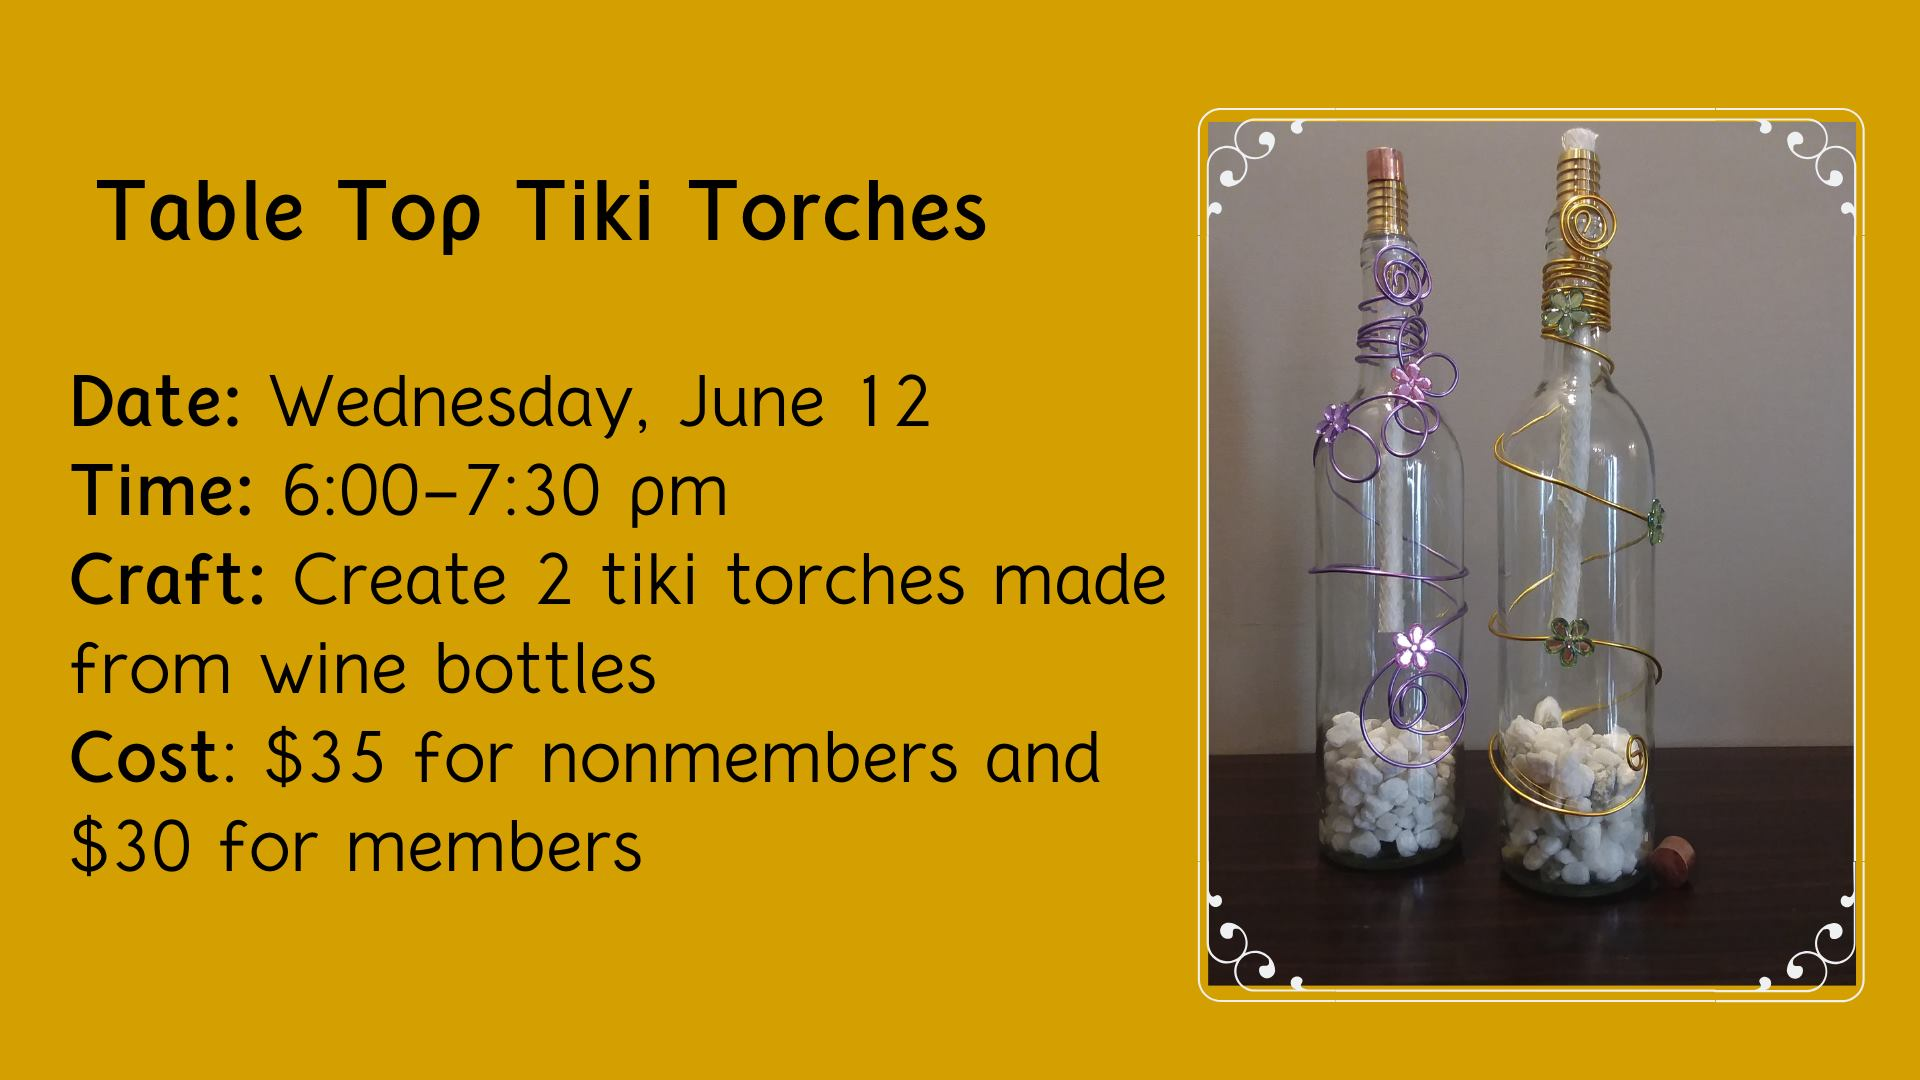 Table Top Tiki Torch Class